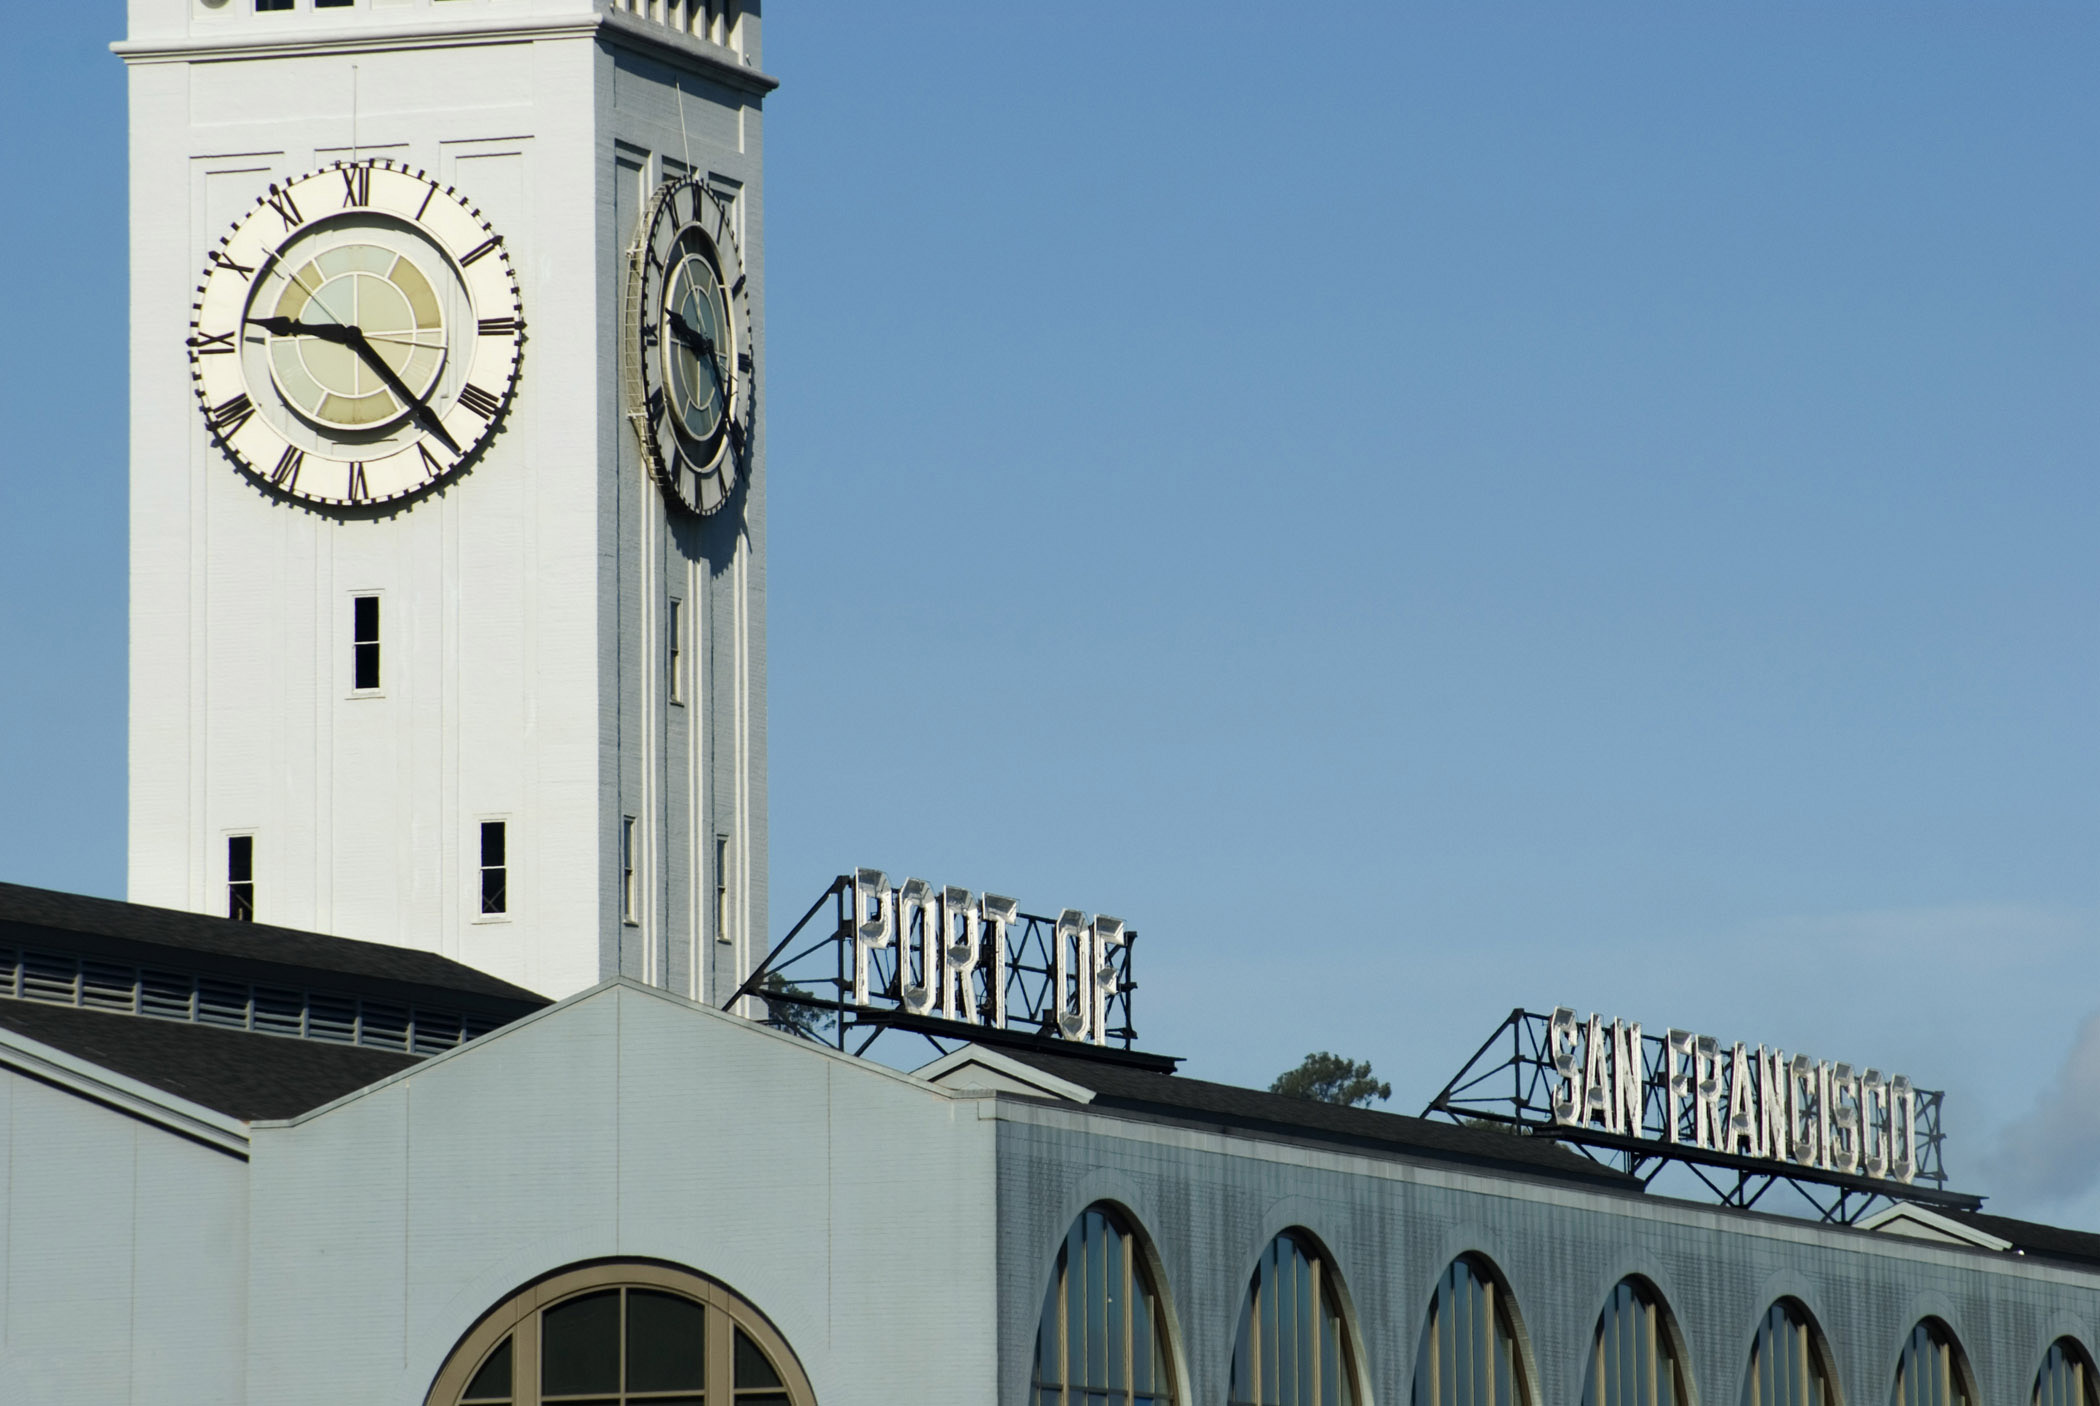 Exterior Wall Clock on Building at Embarcadero San Francisco on Light Blue Sky Background.